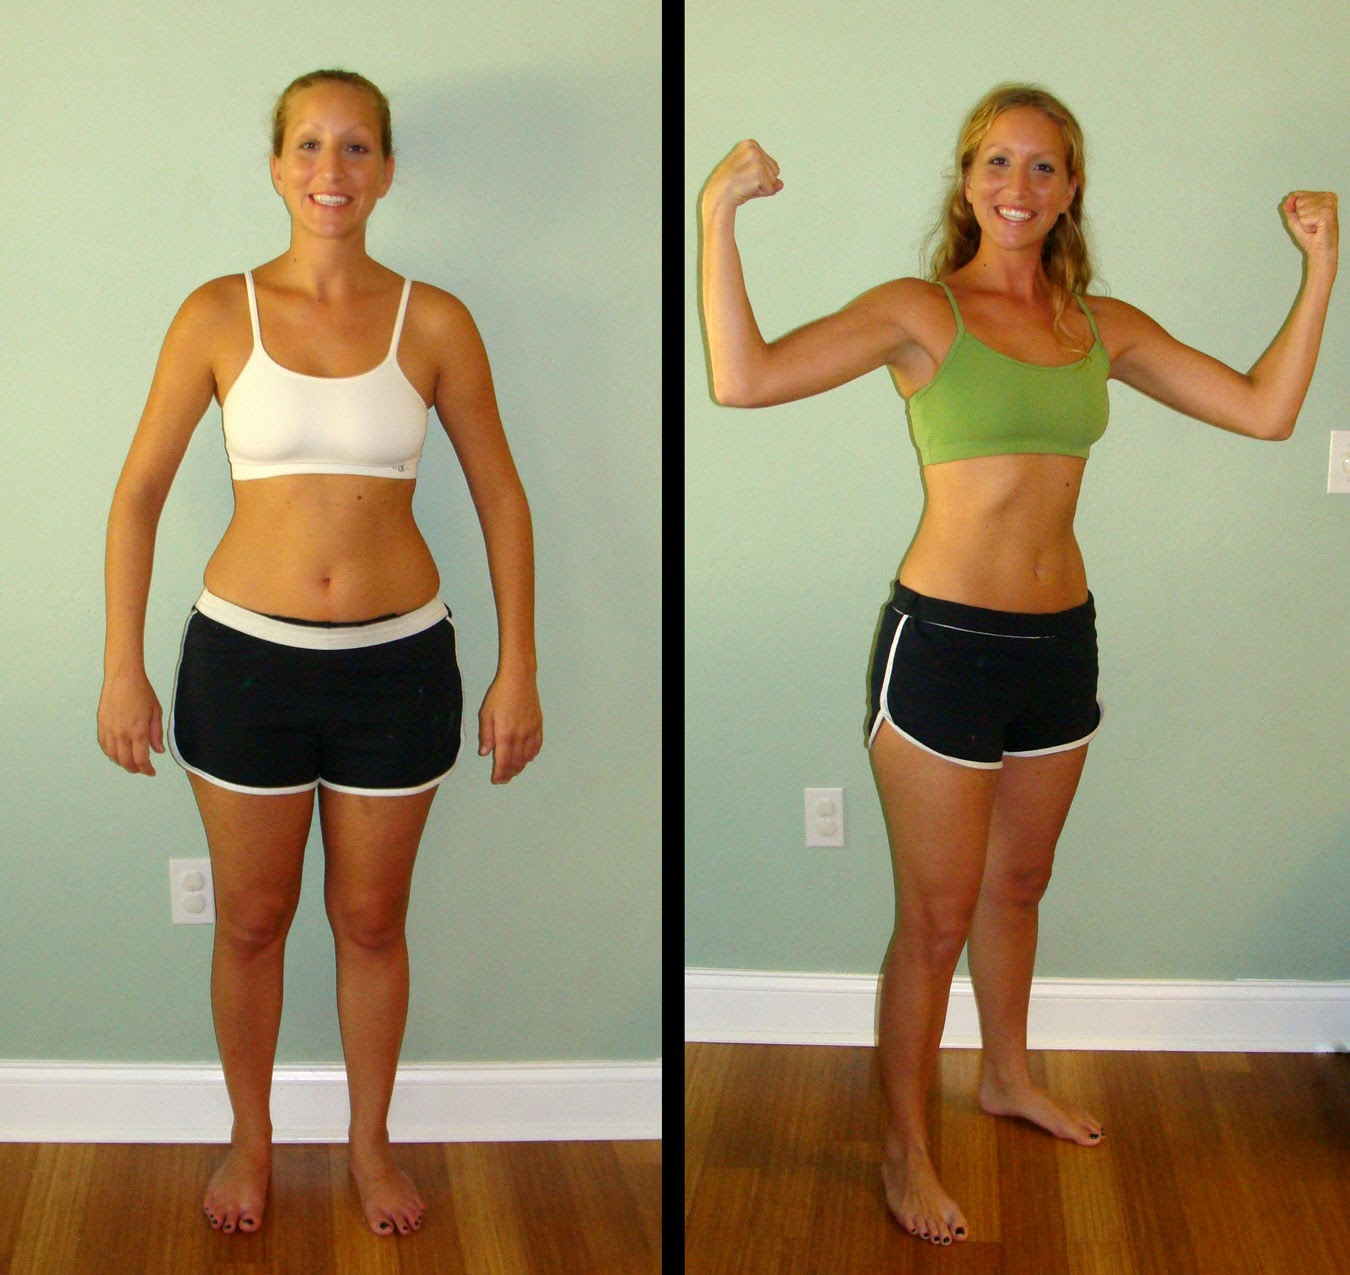 Weight Loss Success Story 7 Tips Fitness And Health Gym To